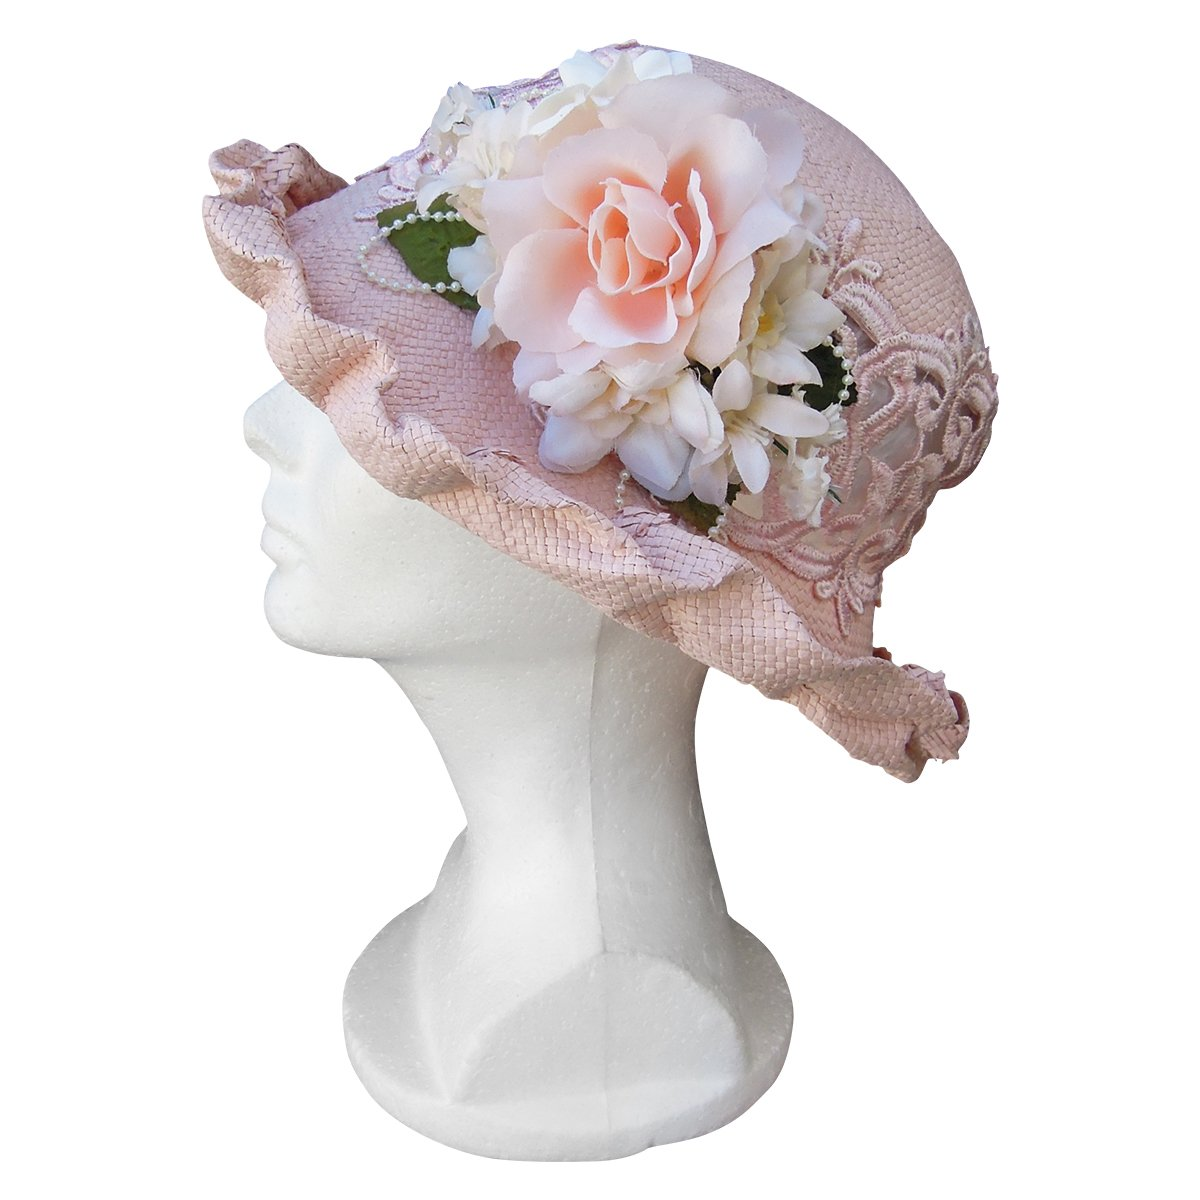 Victorian Style Hats, Bonnets, Caps, Patterns  Lace Straw Cutaway Hat Narrow Brim Ladies Cloche Church $45.00 AT vintagedancer.com